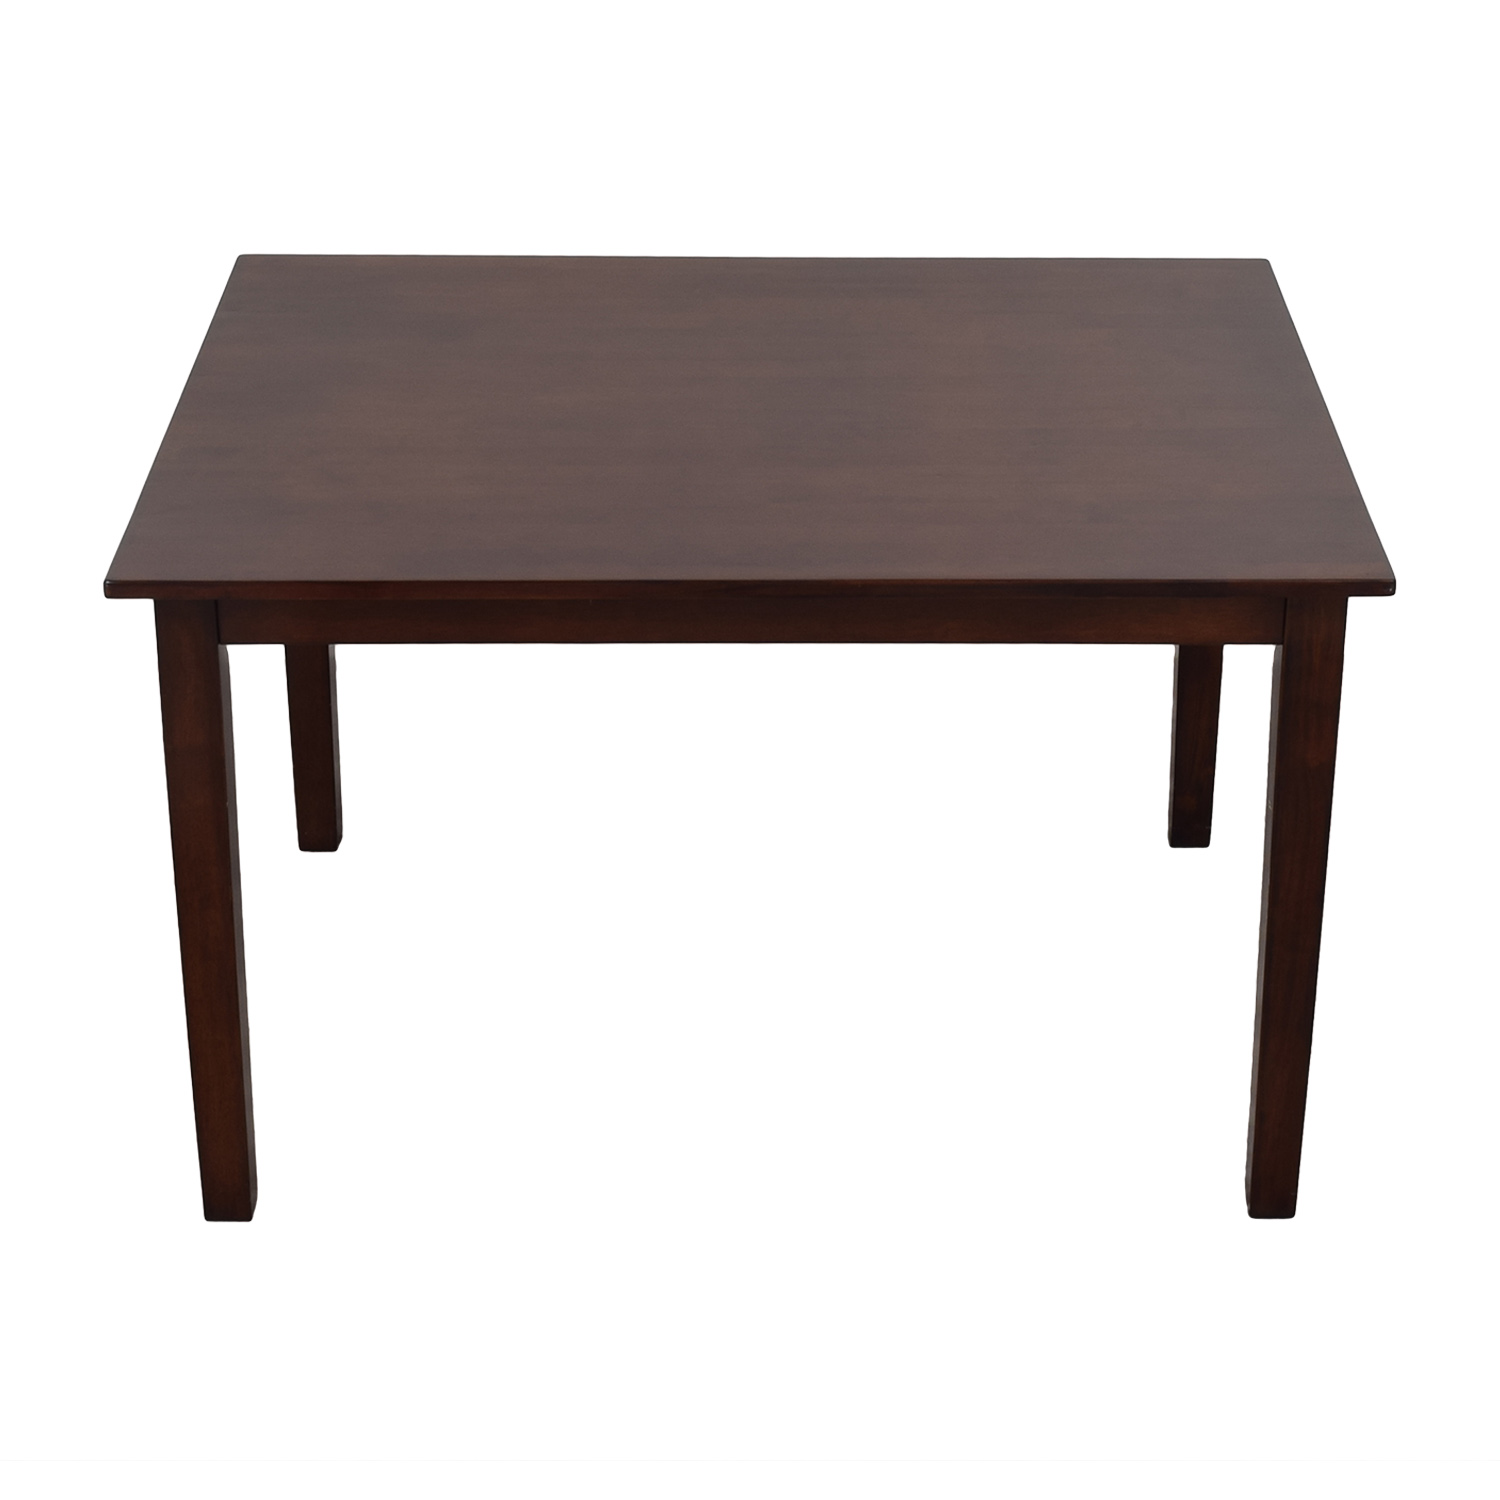 Star Furniture Star Furniture Dining Table on sale